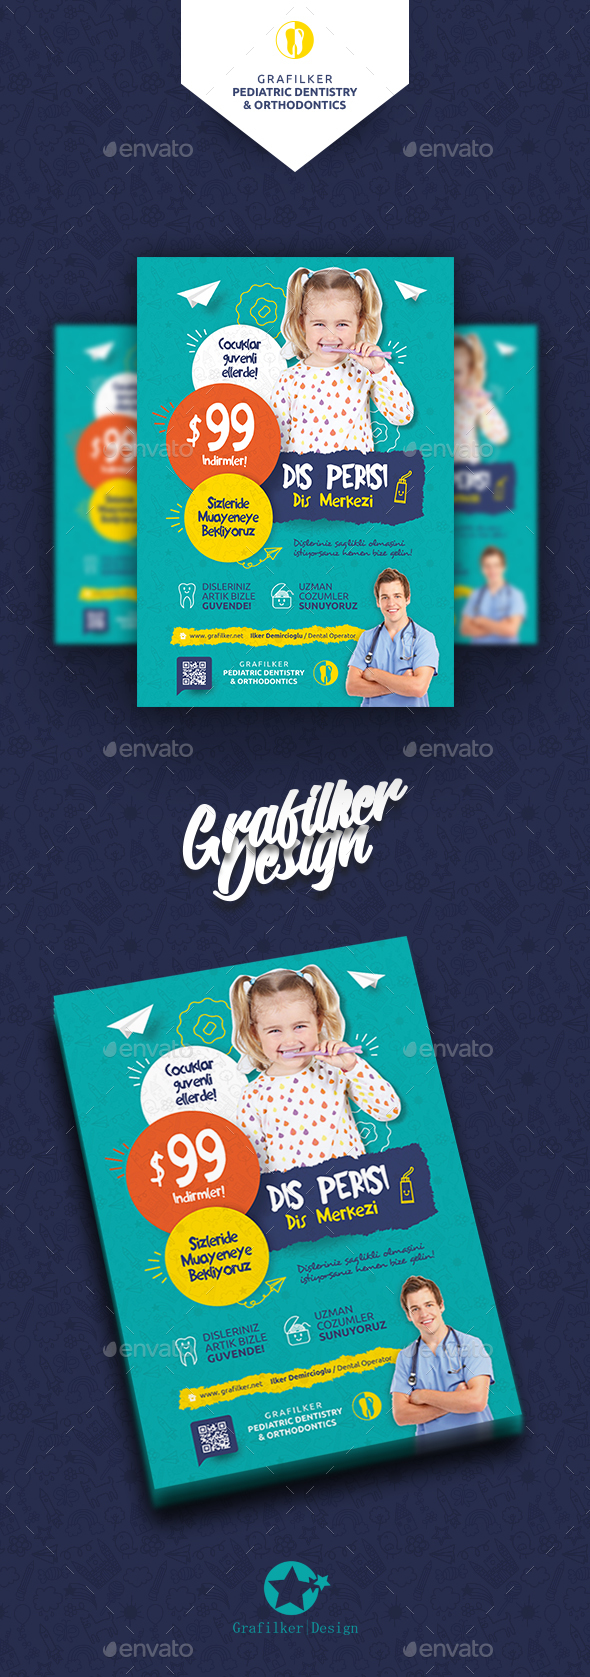 Kids Dental Flyer Templates - Corporate Flyers